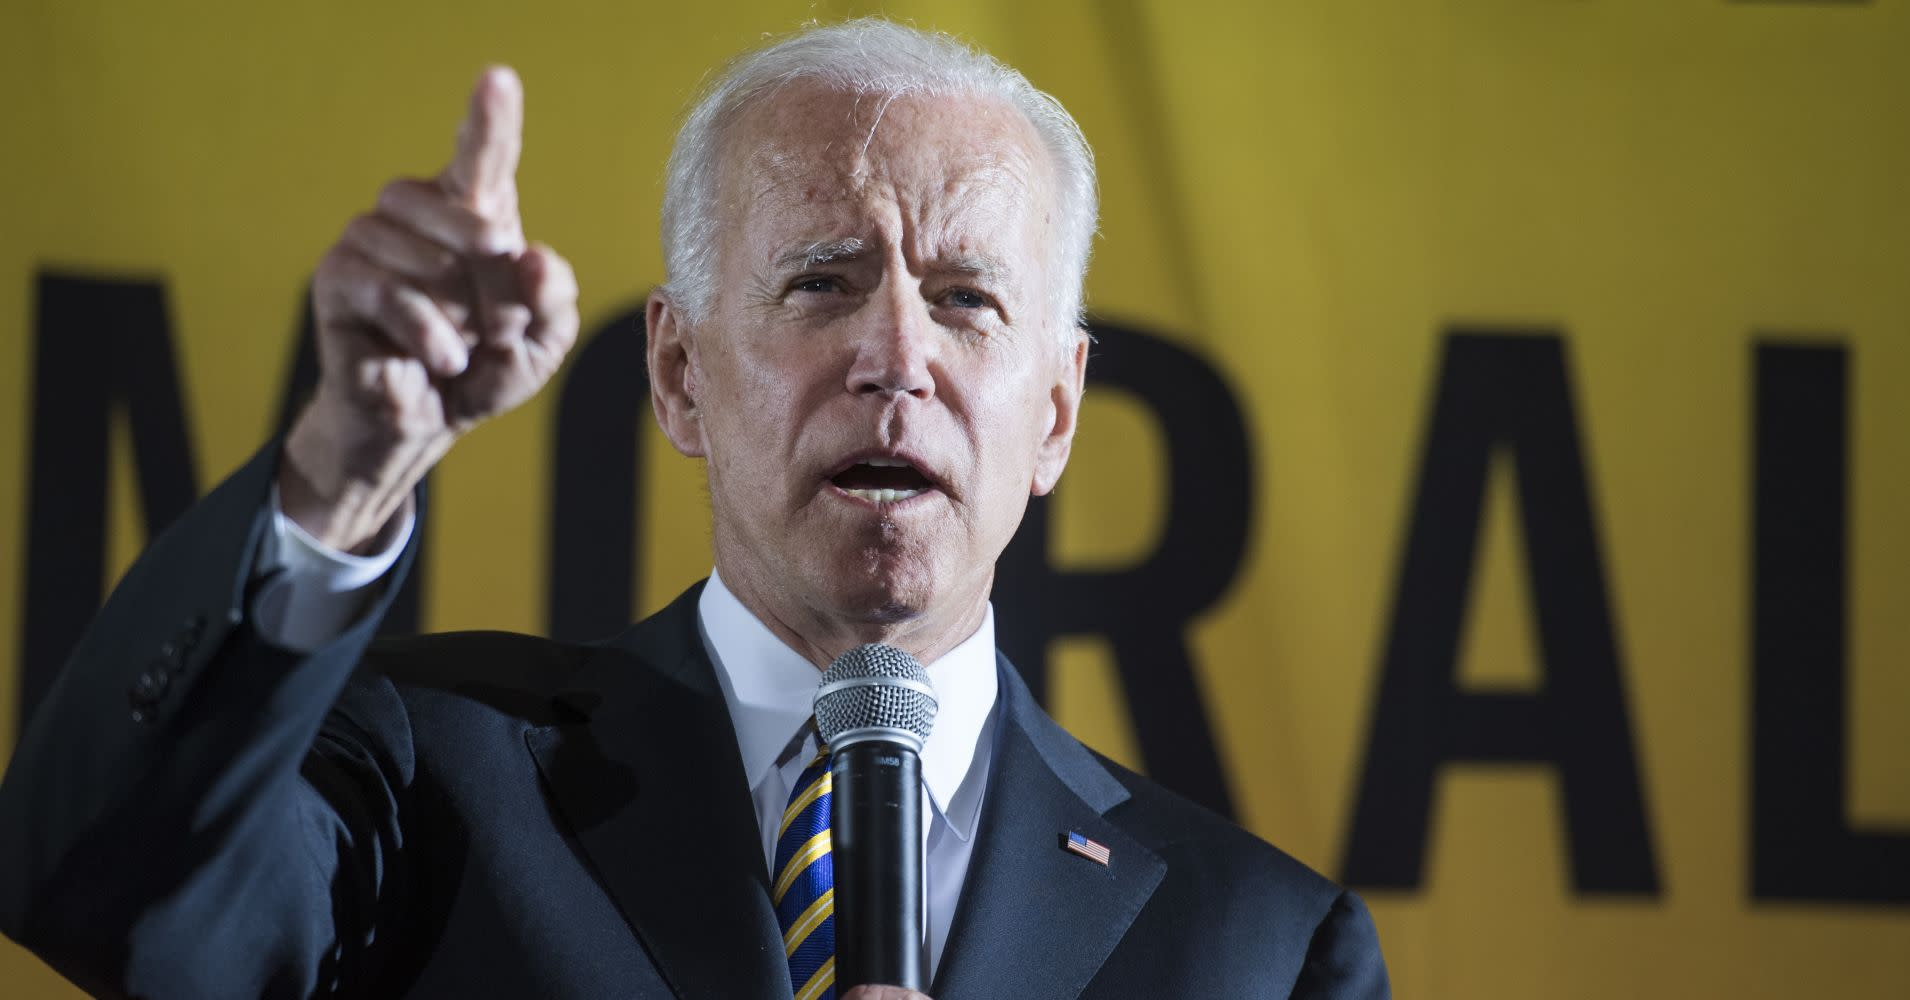 Billionaire GOP donor and Trump supporter says he rejected Joe Biden's  request for fundraising help in 2020